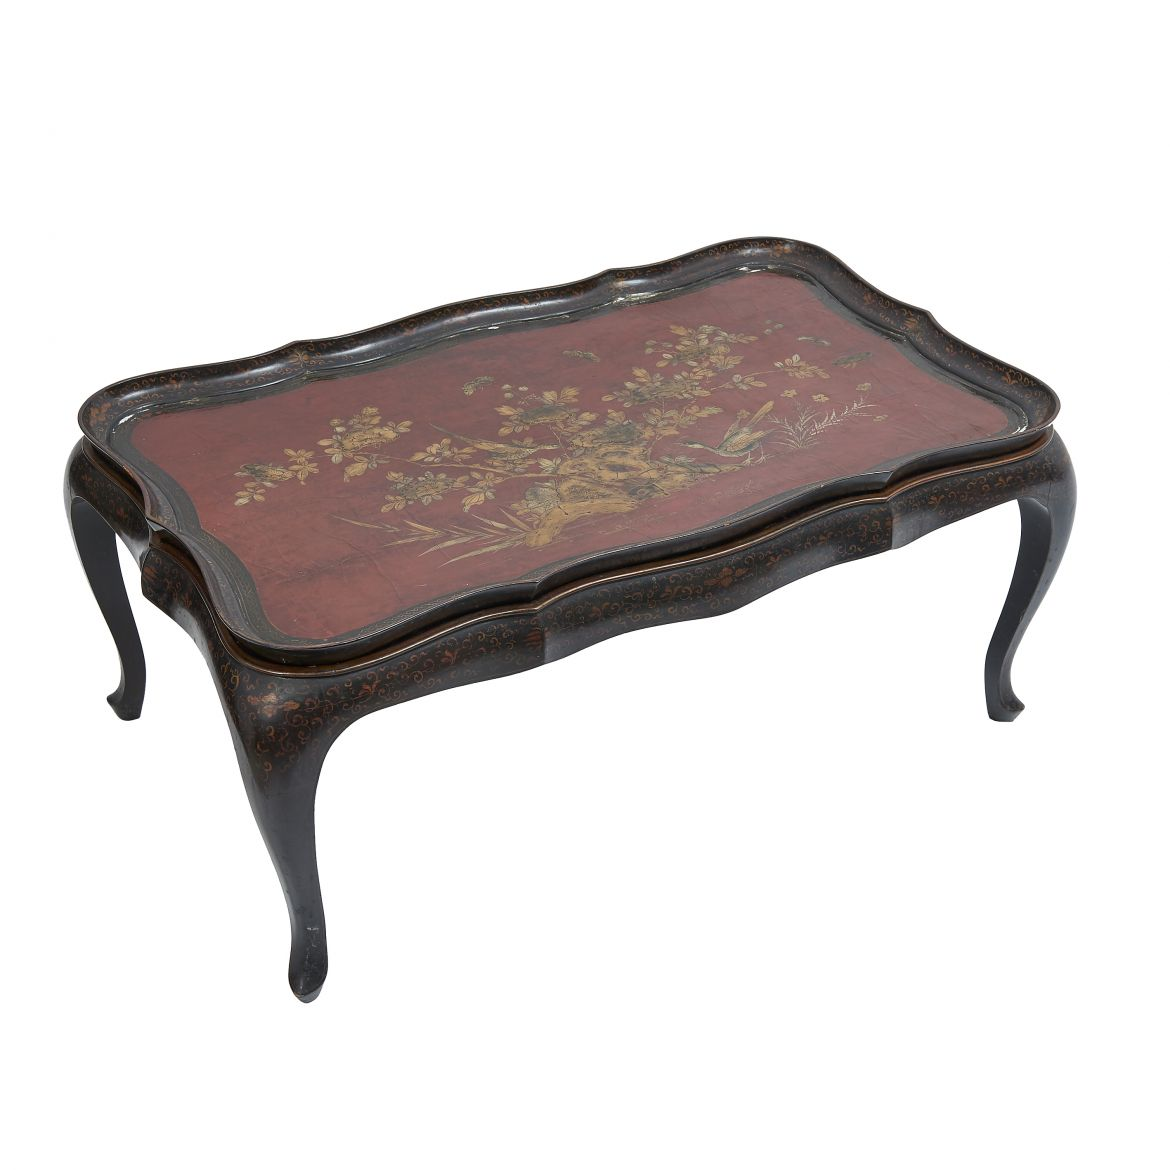 Jansen Chinoiserie Table